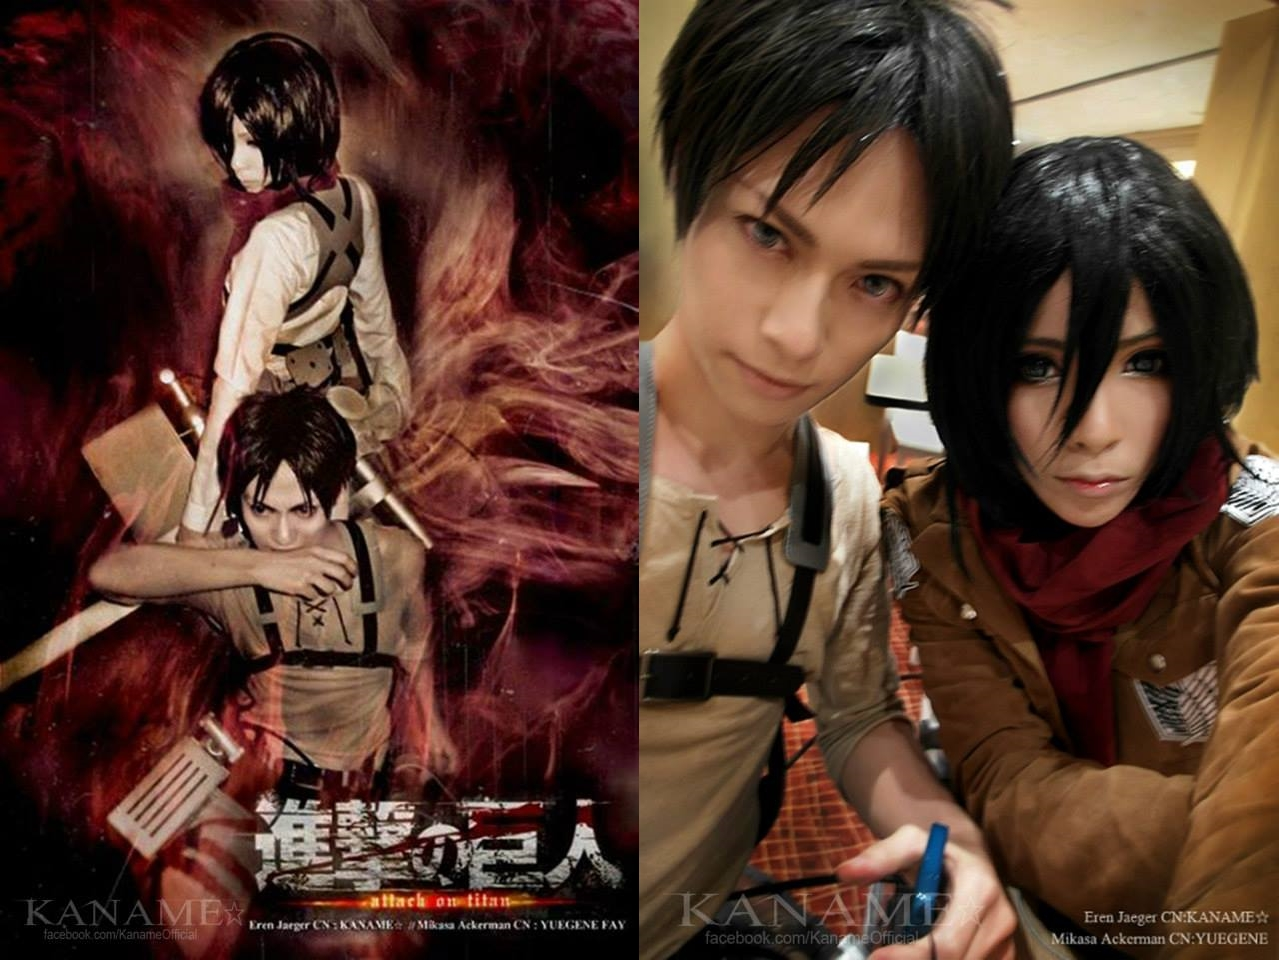 Kaname as the very Eren , Eren Jeager and Yuegene as Mikasa Ackerman